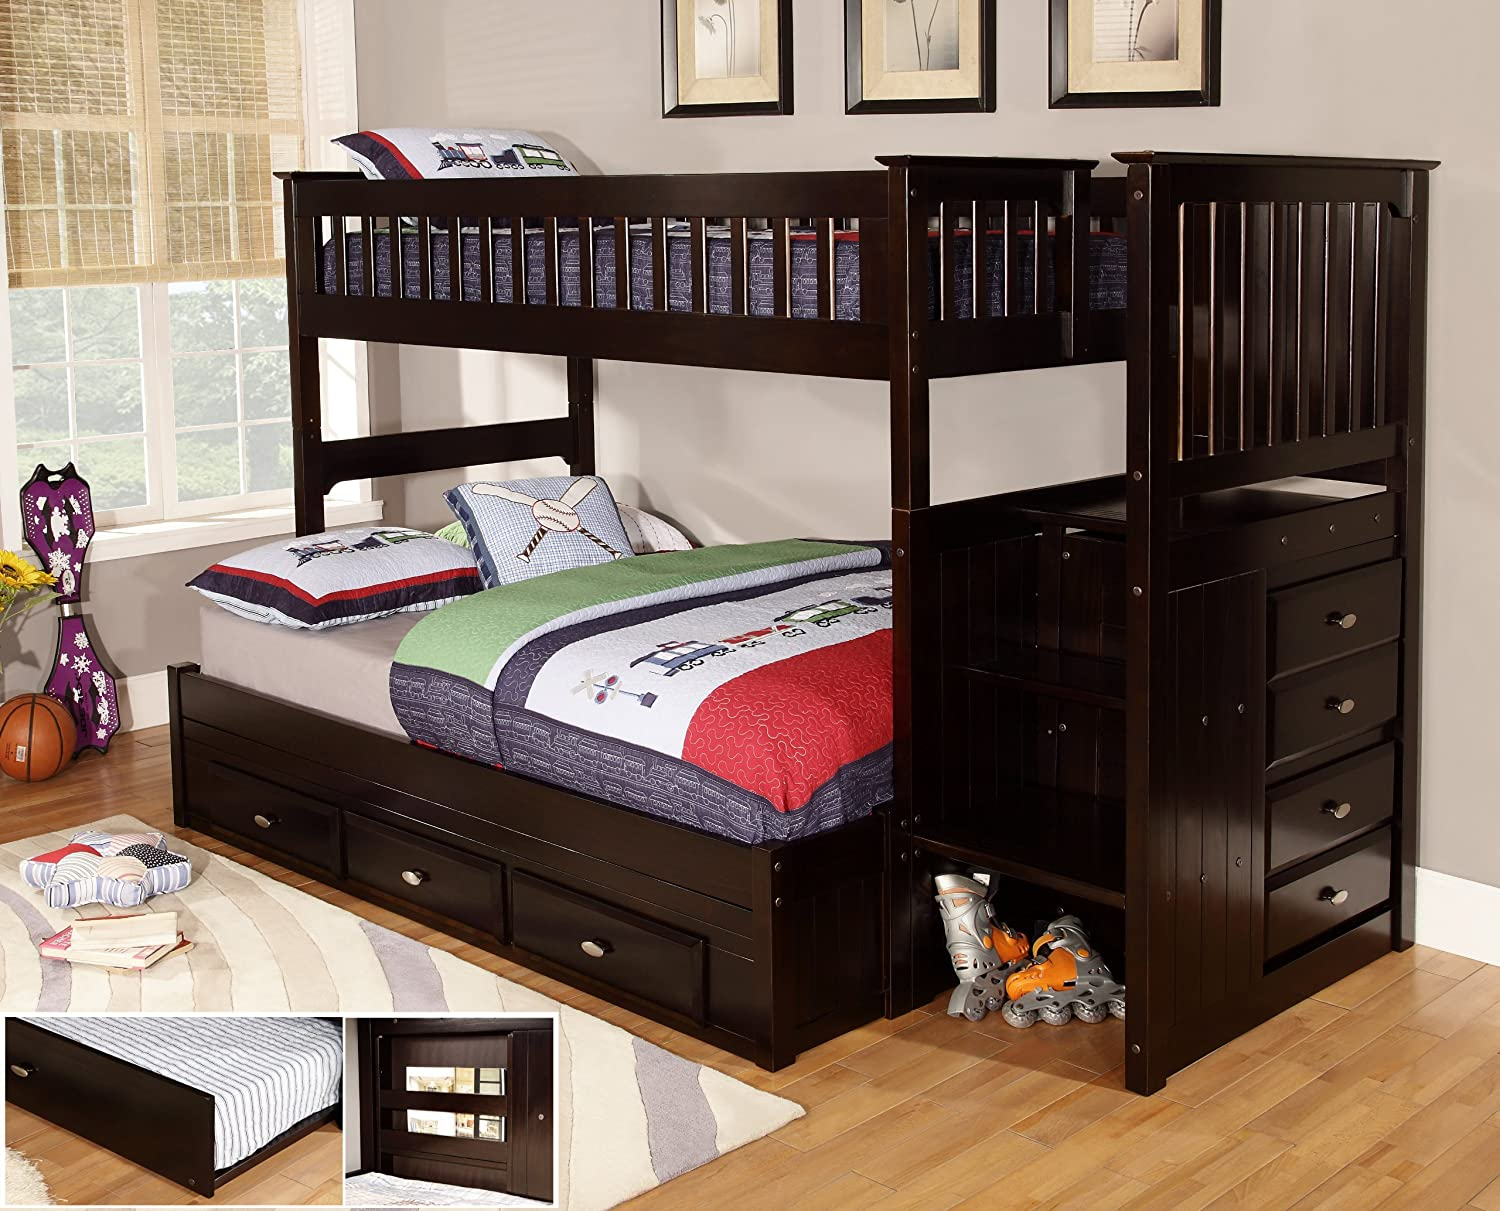 Amazon.com Discovery World Furniture Twin over Full Staircase Bunk Bed with 3 Drawer Storage Espresso Kitchen u0026 Dining & Amazon.com: Discovery World Furniture Twin over Full Staircase Bunk ...